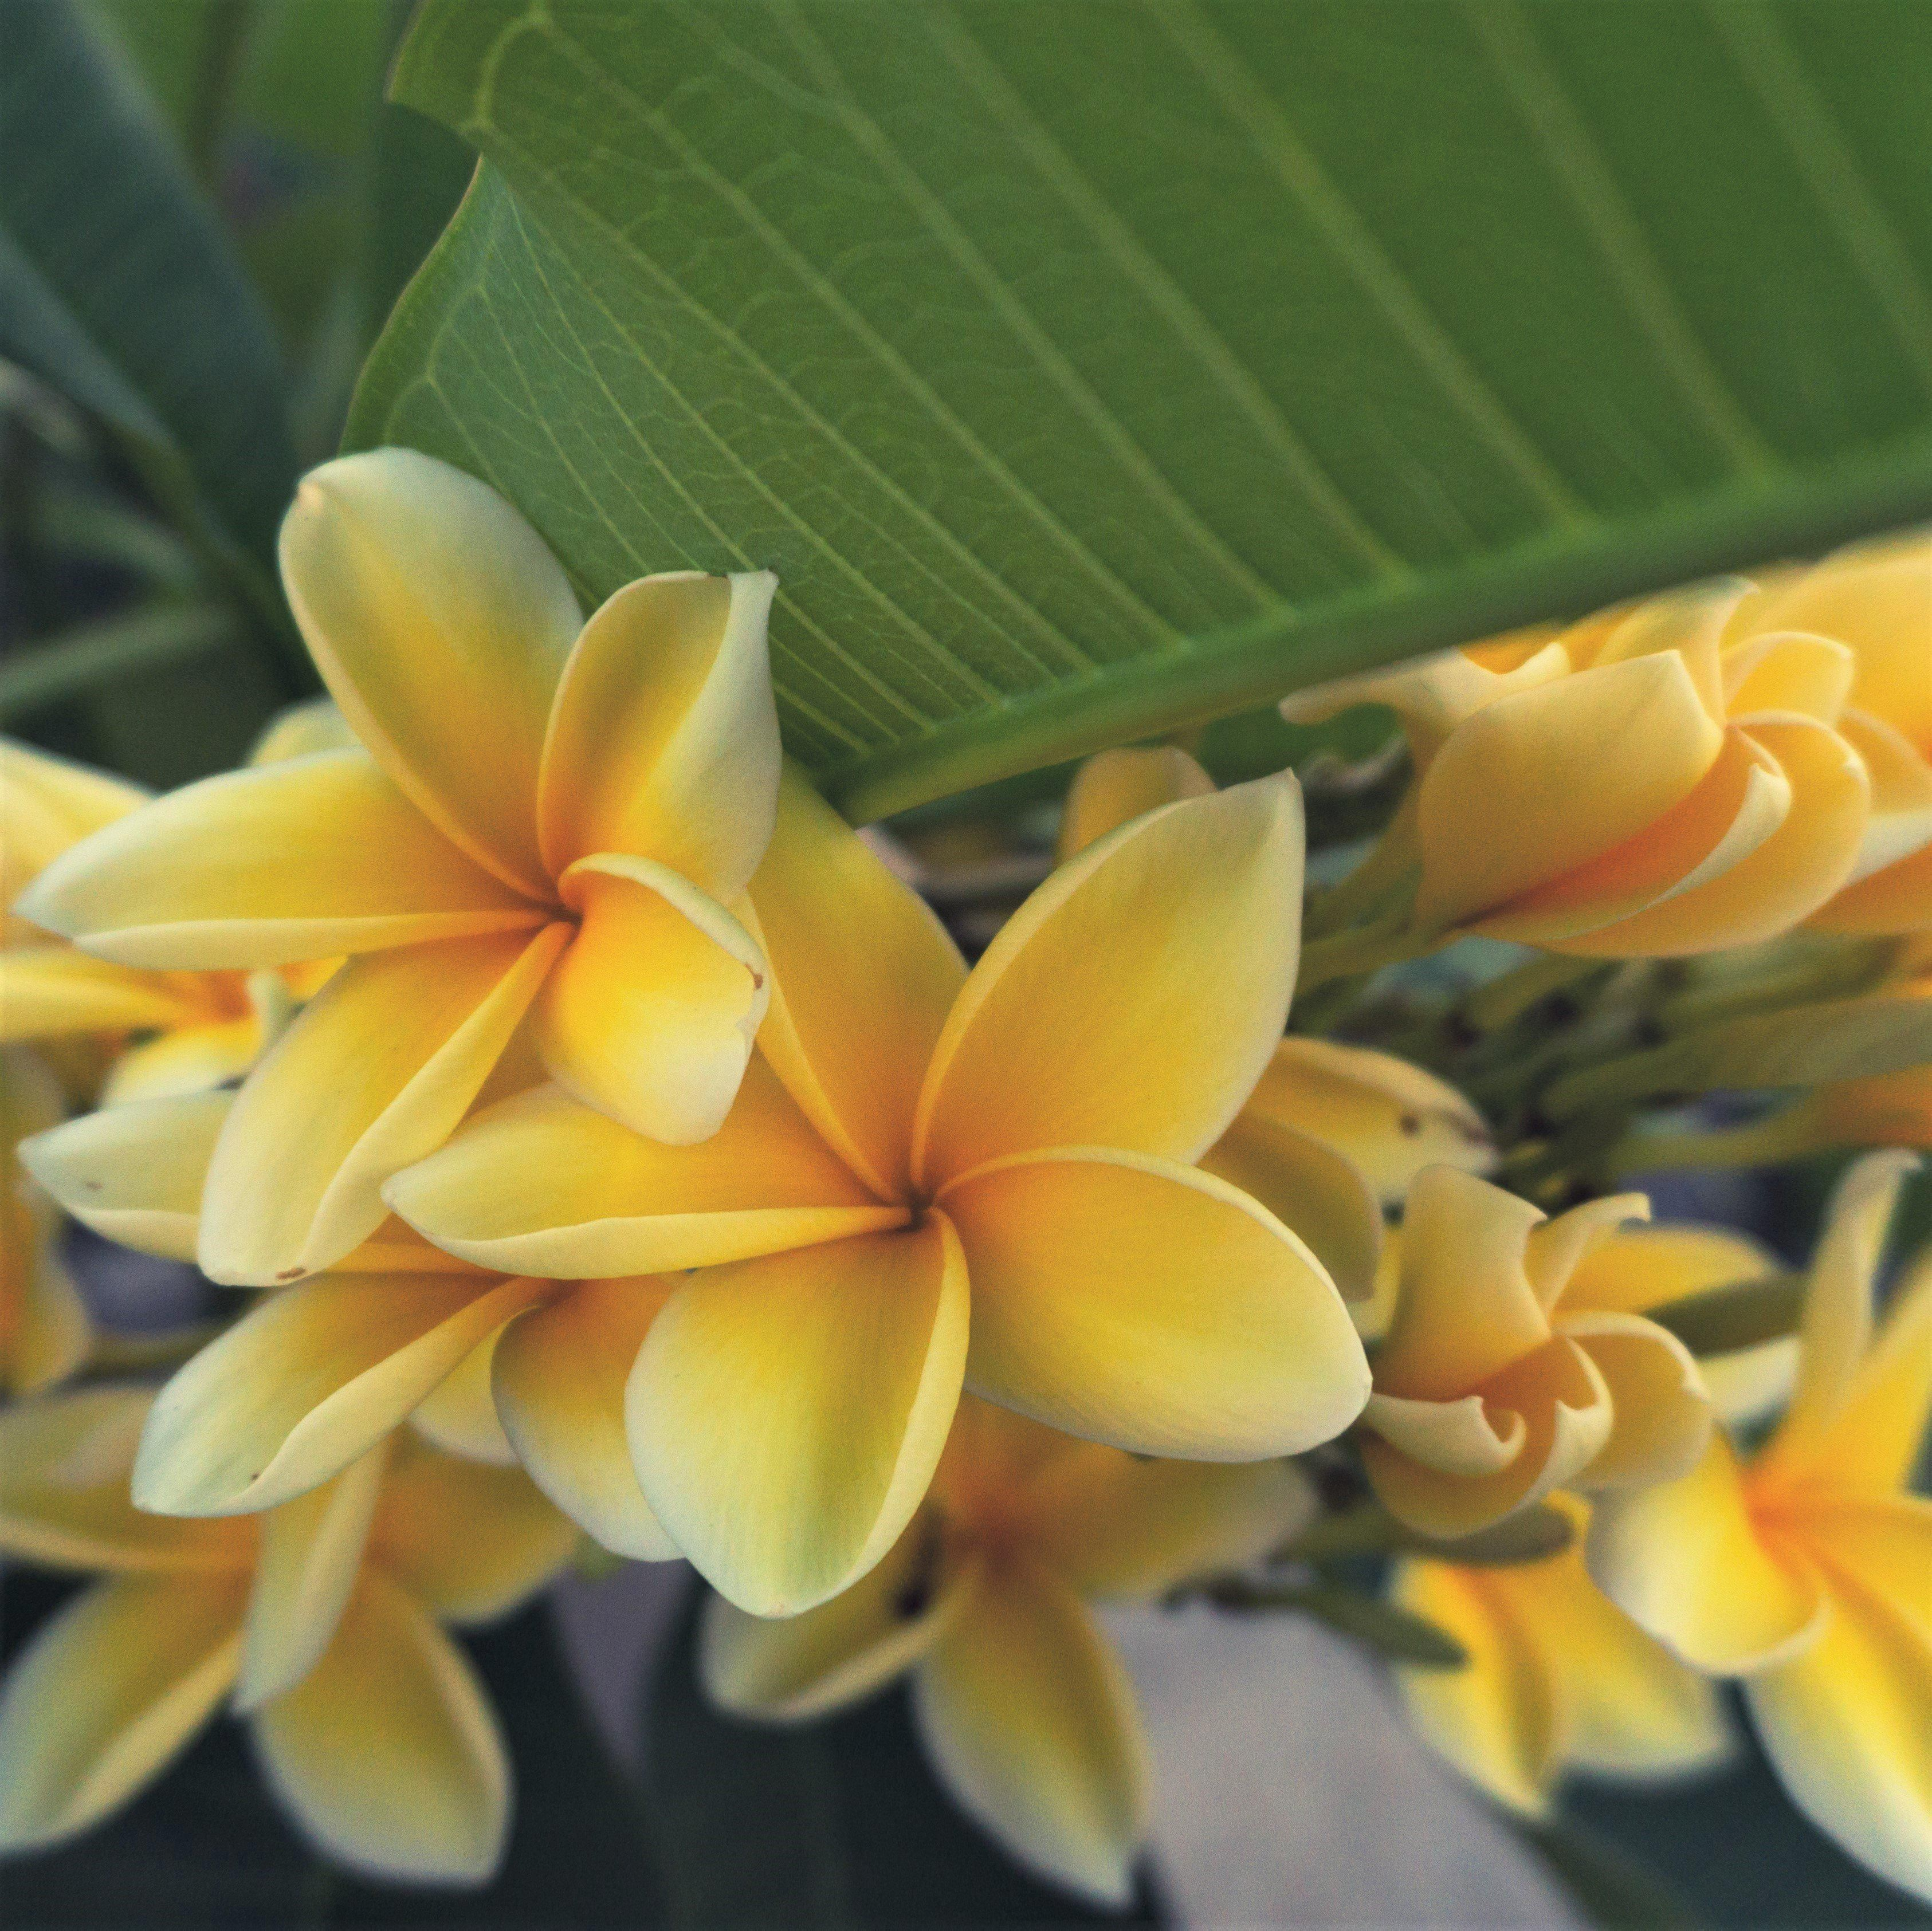 Fragrant Yellow Plumeria Potted Plants For Sale | Plumeria Yellow Shades Selected for unsurpassed beauty and fragrance, our Yellow Plumeria plants are a buttery yellow color with vibrant, sunny centers. Plumeria grow well outdoors all summer long. Full sun and well-drained soil will keep these plants happy. Really drought tolerant! Bring indoors when the temperatures cool. Easy to grow! Our plumeria plants are well-rooted stock taken from strong, mature Hawaiian mother trees. These 12